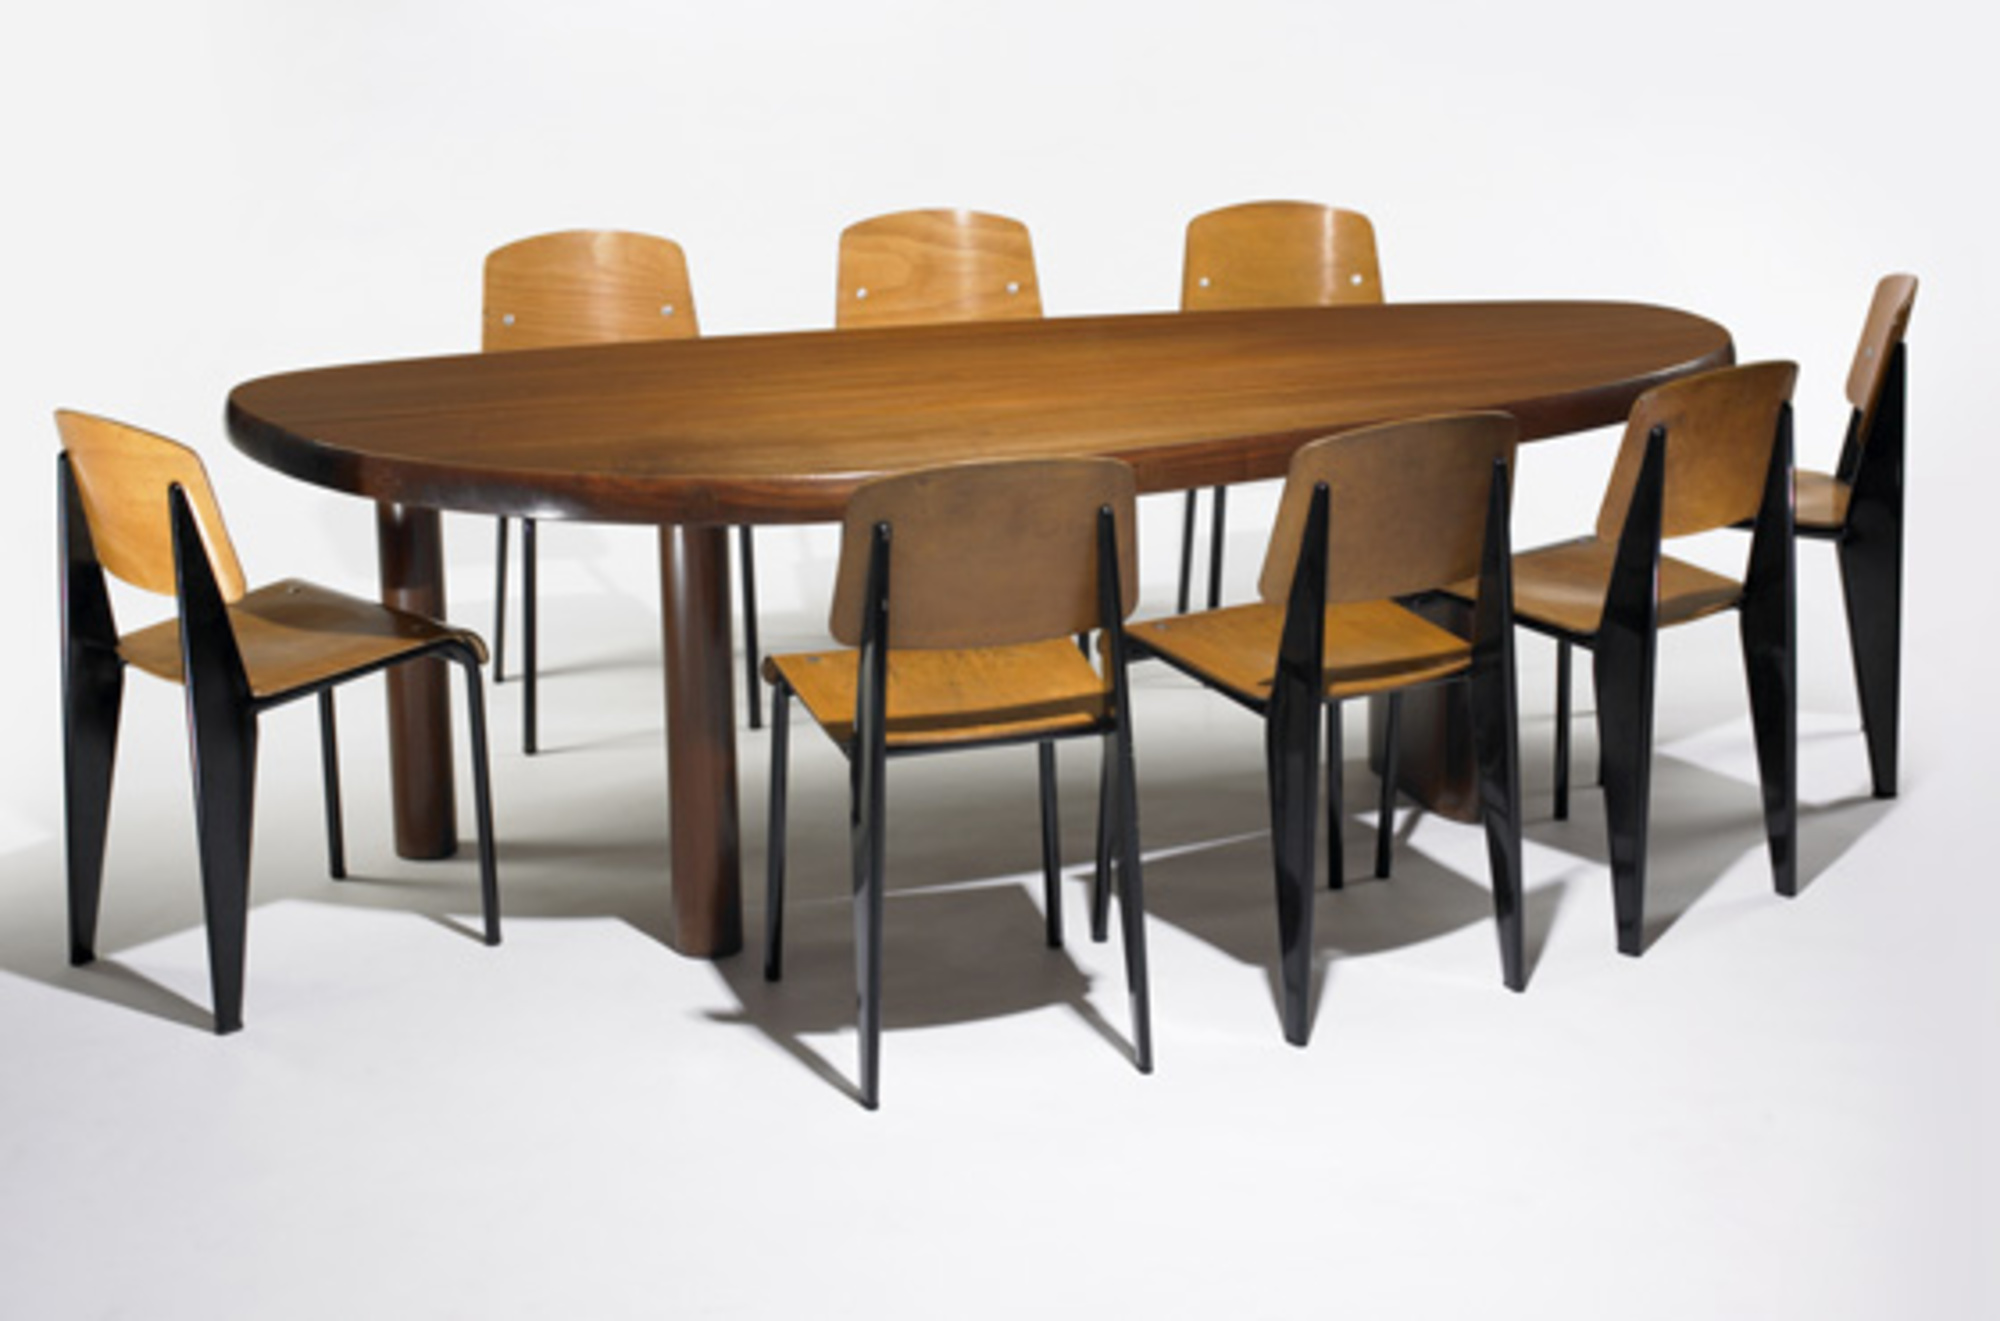 248 Charlotte Perriand Forme Libre Dining Table Important